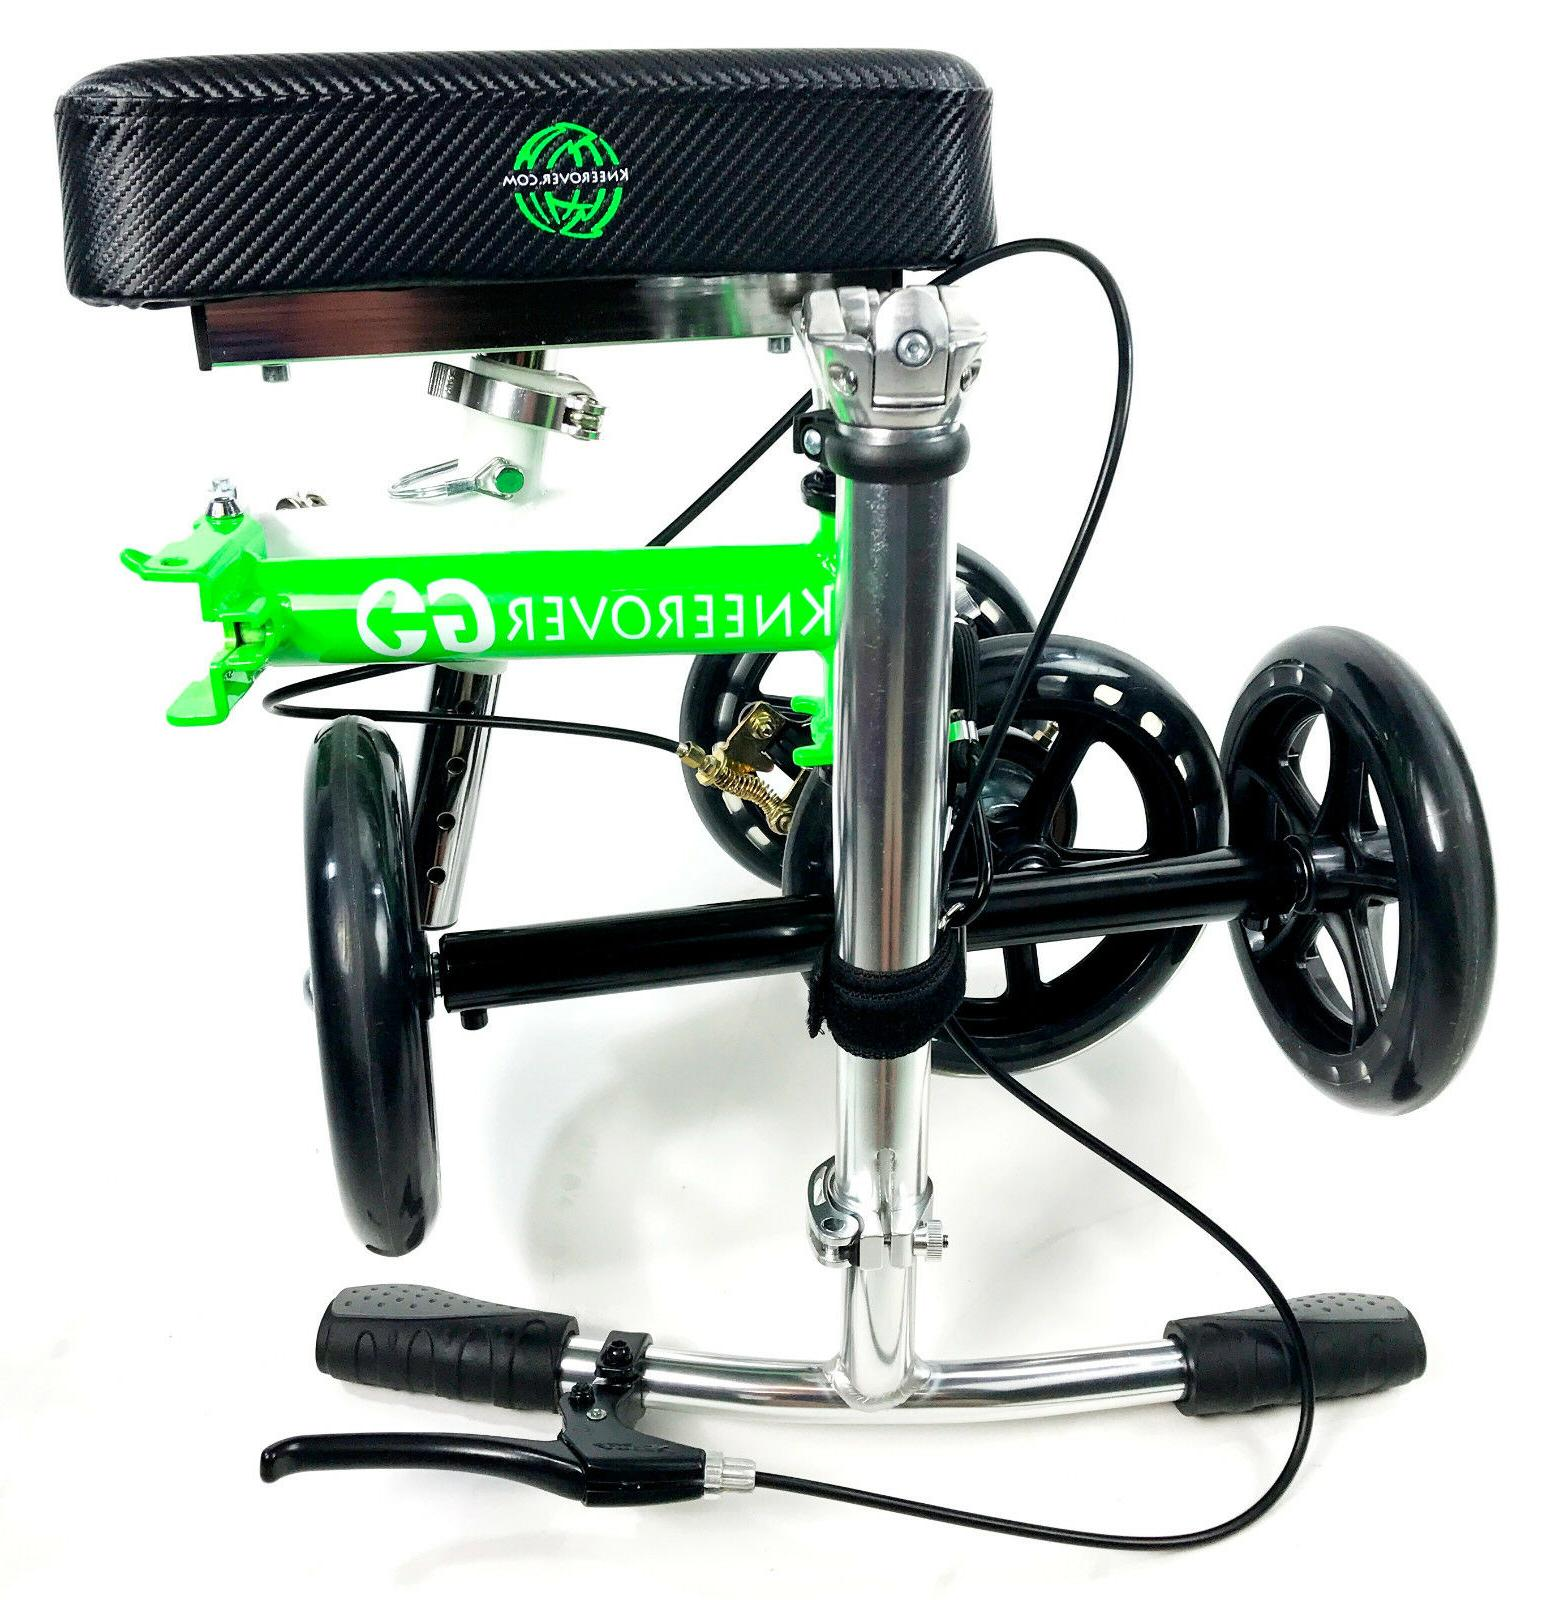 NEW KneeRover GO Knee Walker Compact & Scooter Crutches